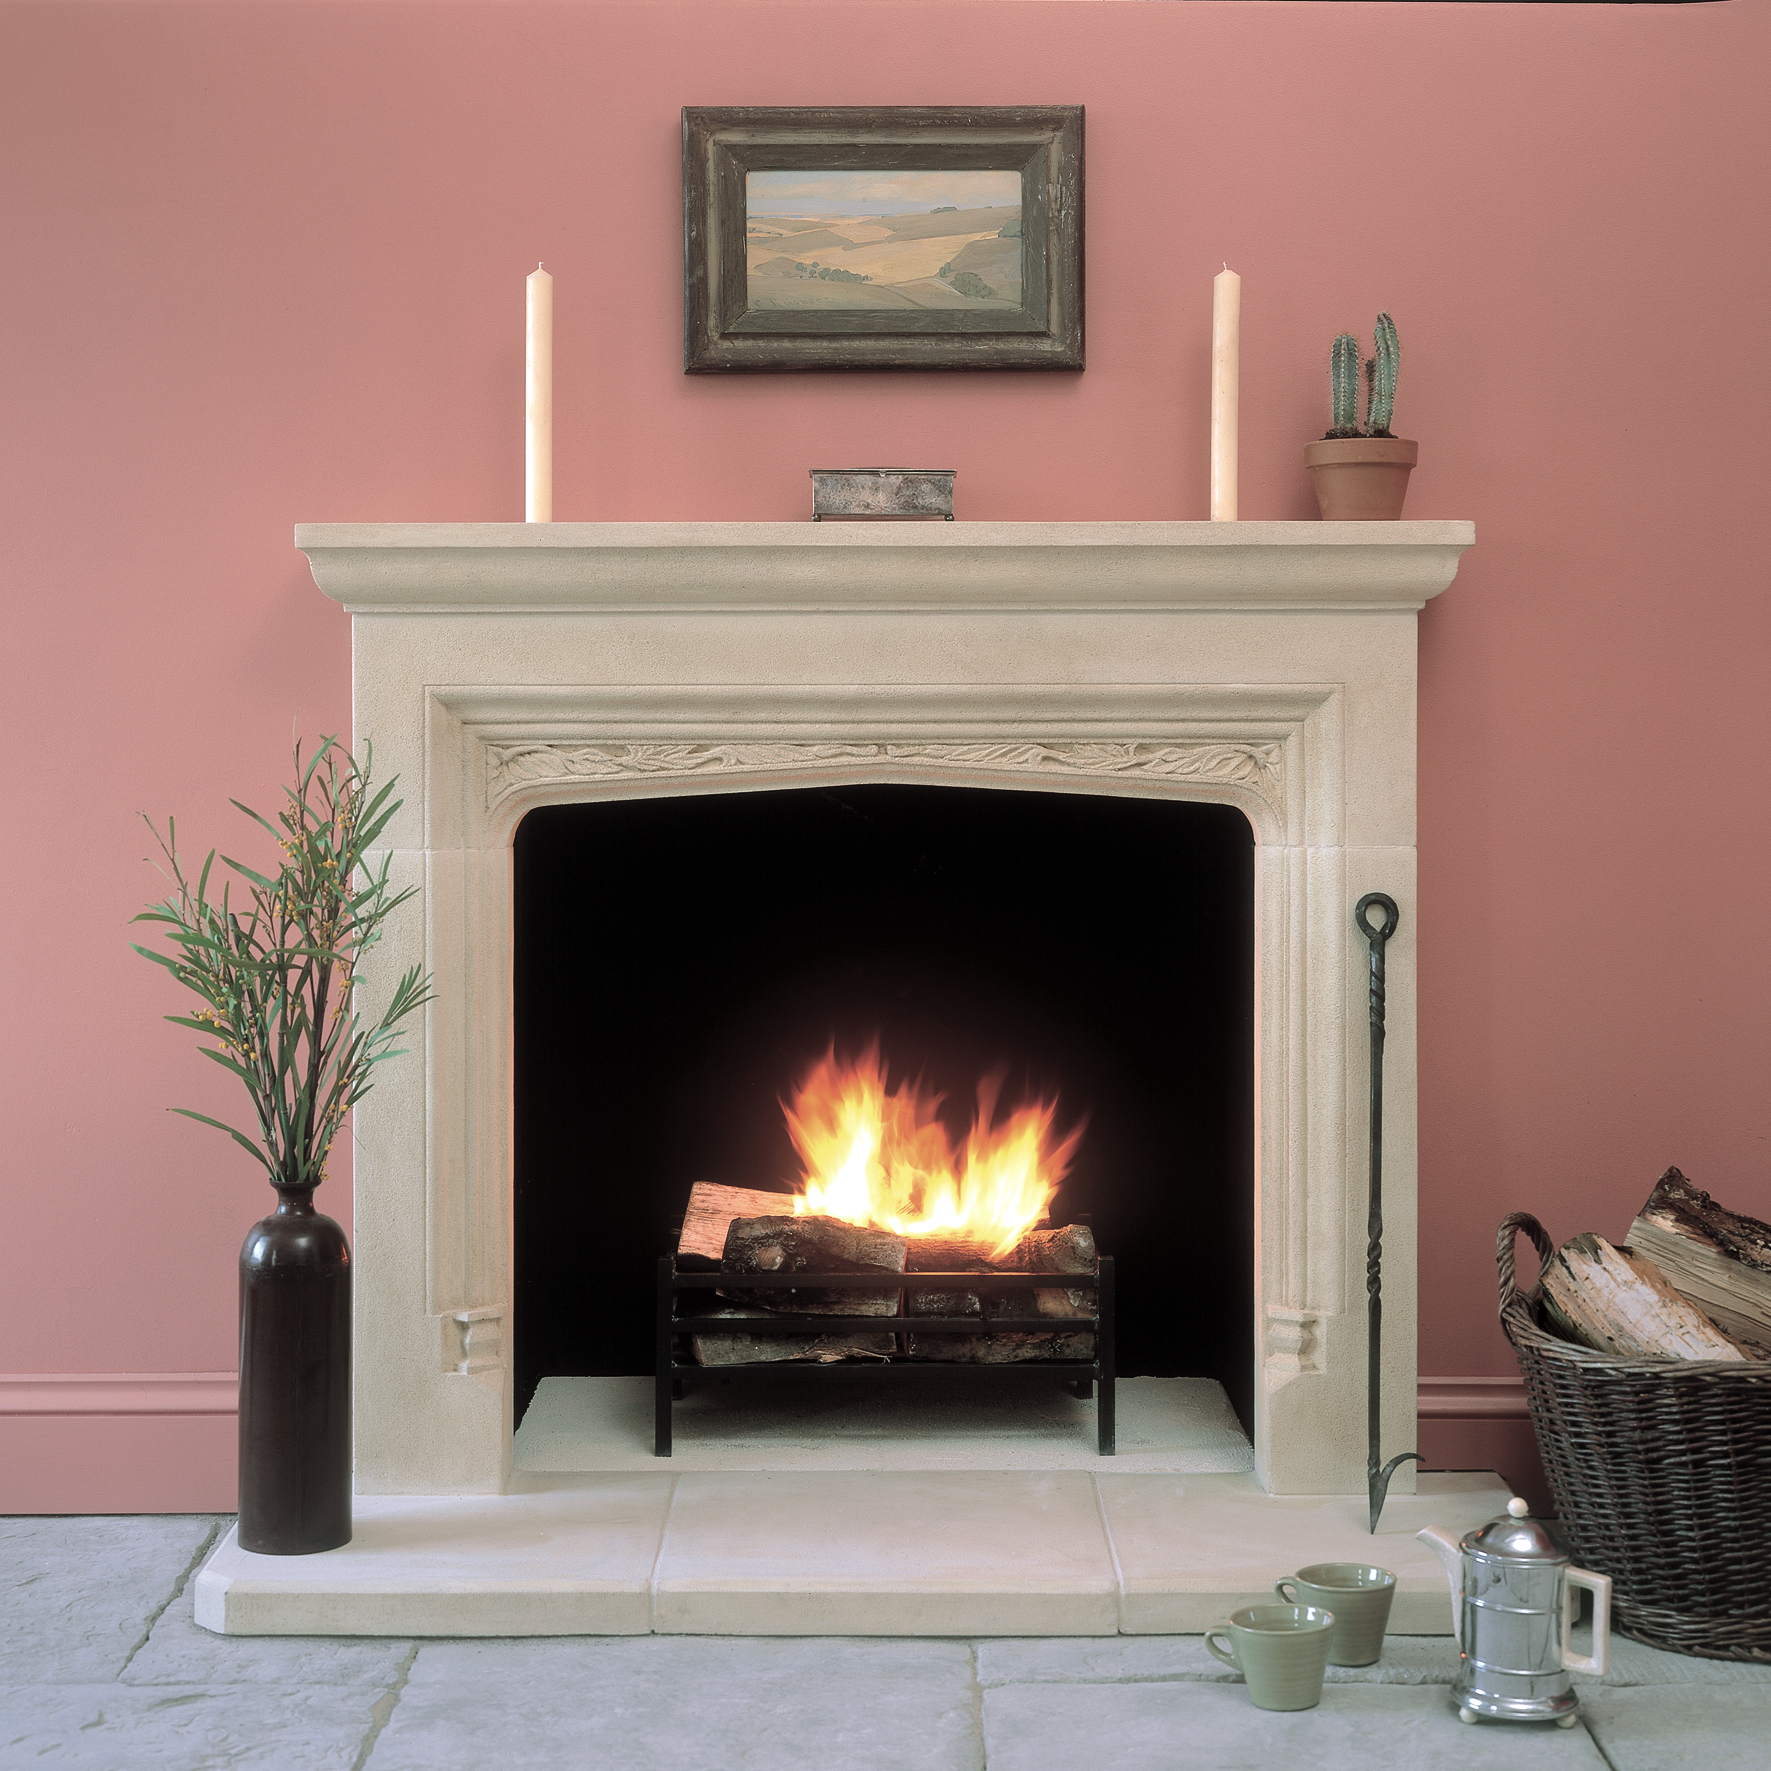 Tudor rudloe for Tudor style fireplace